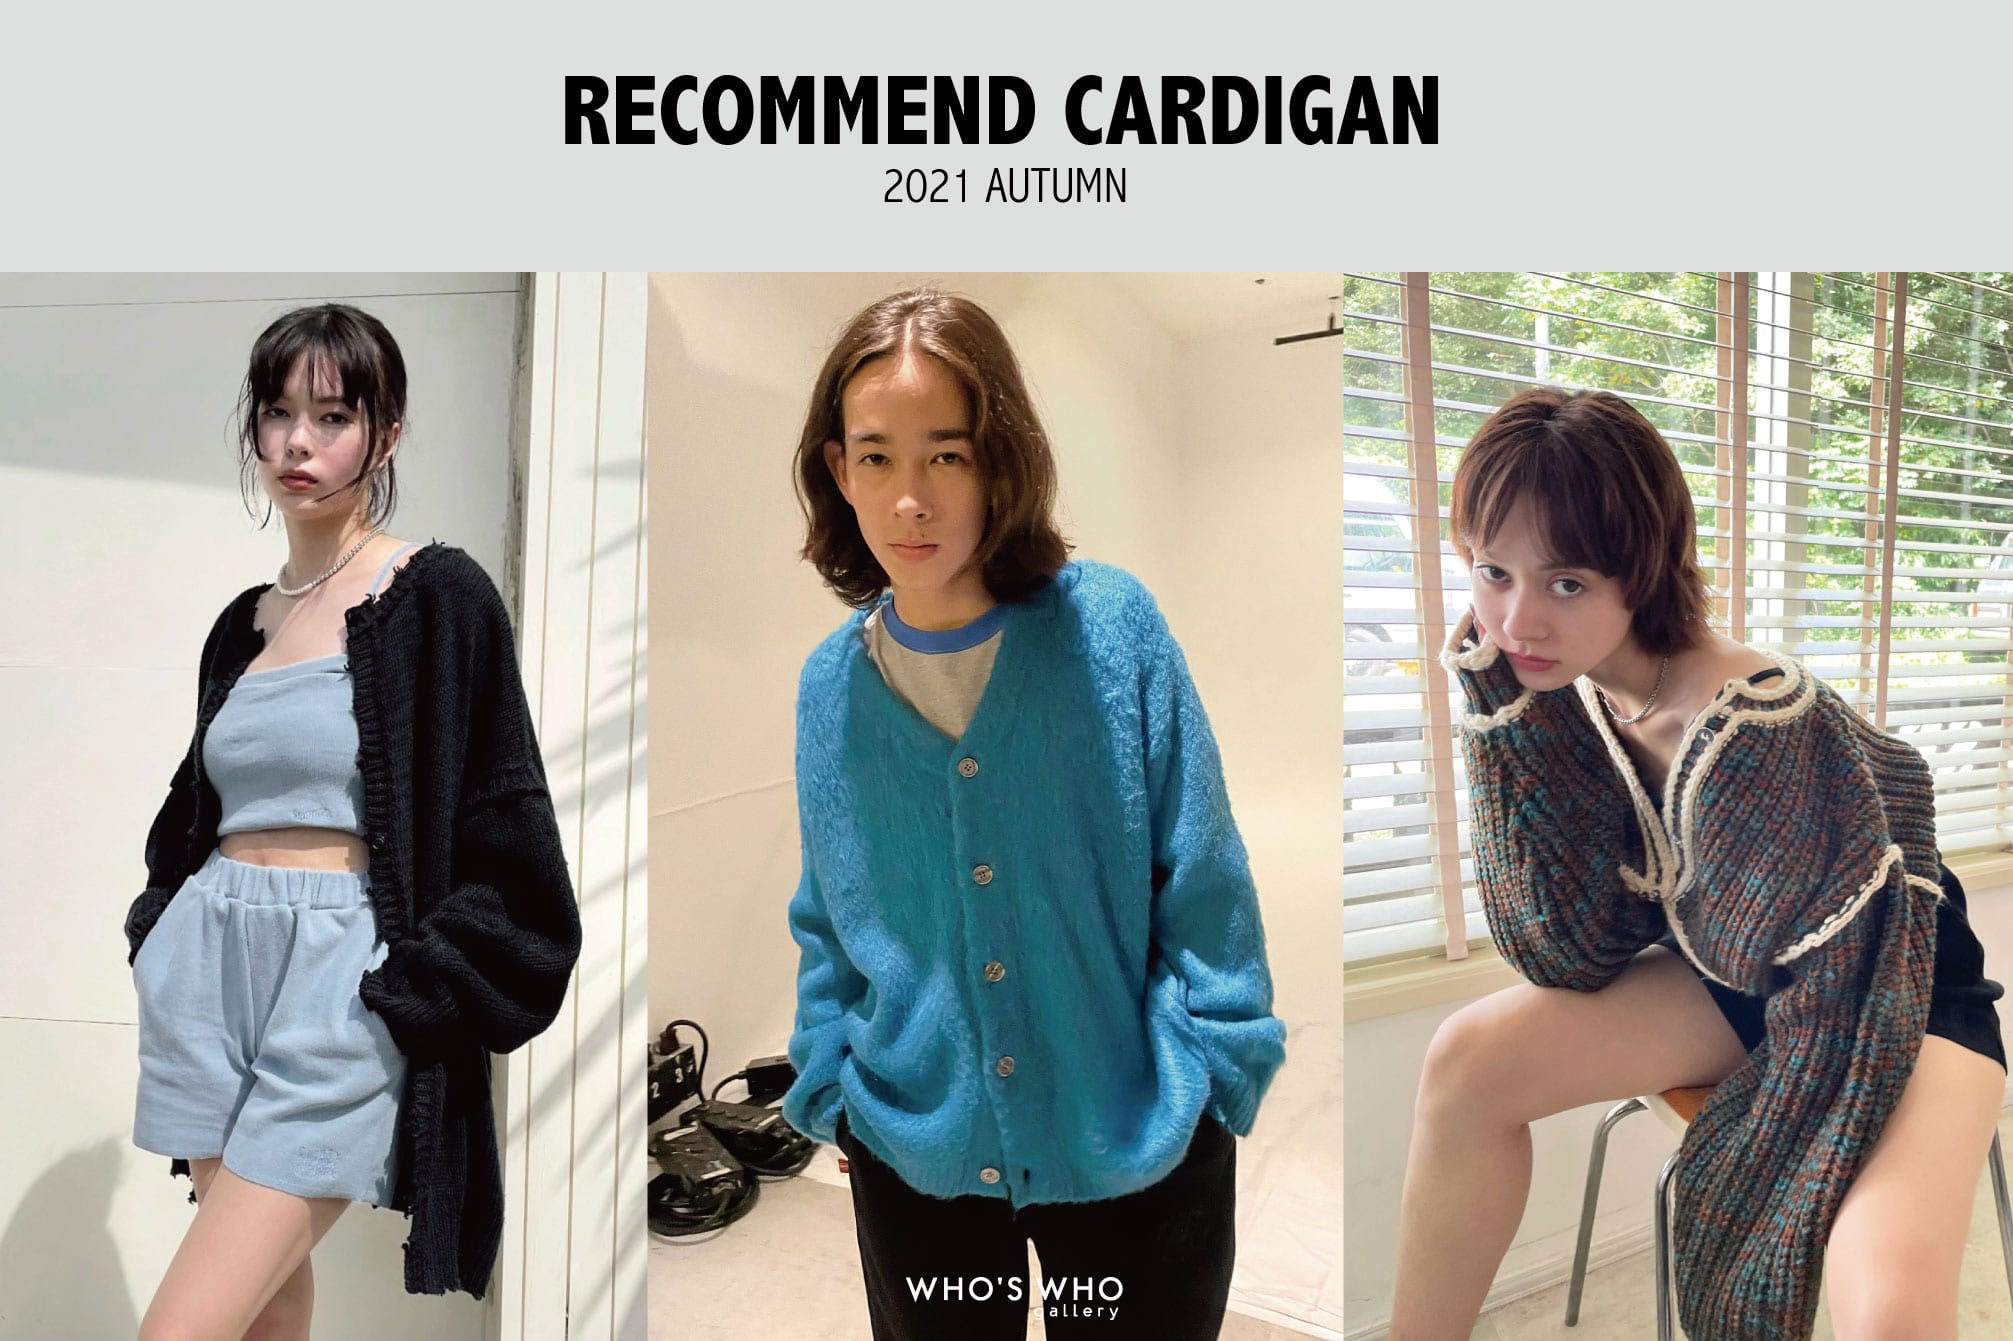 WHO'S WHO gallery 【RECOMMEND CARDIGAN】